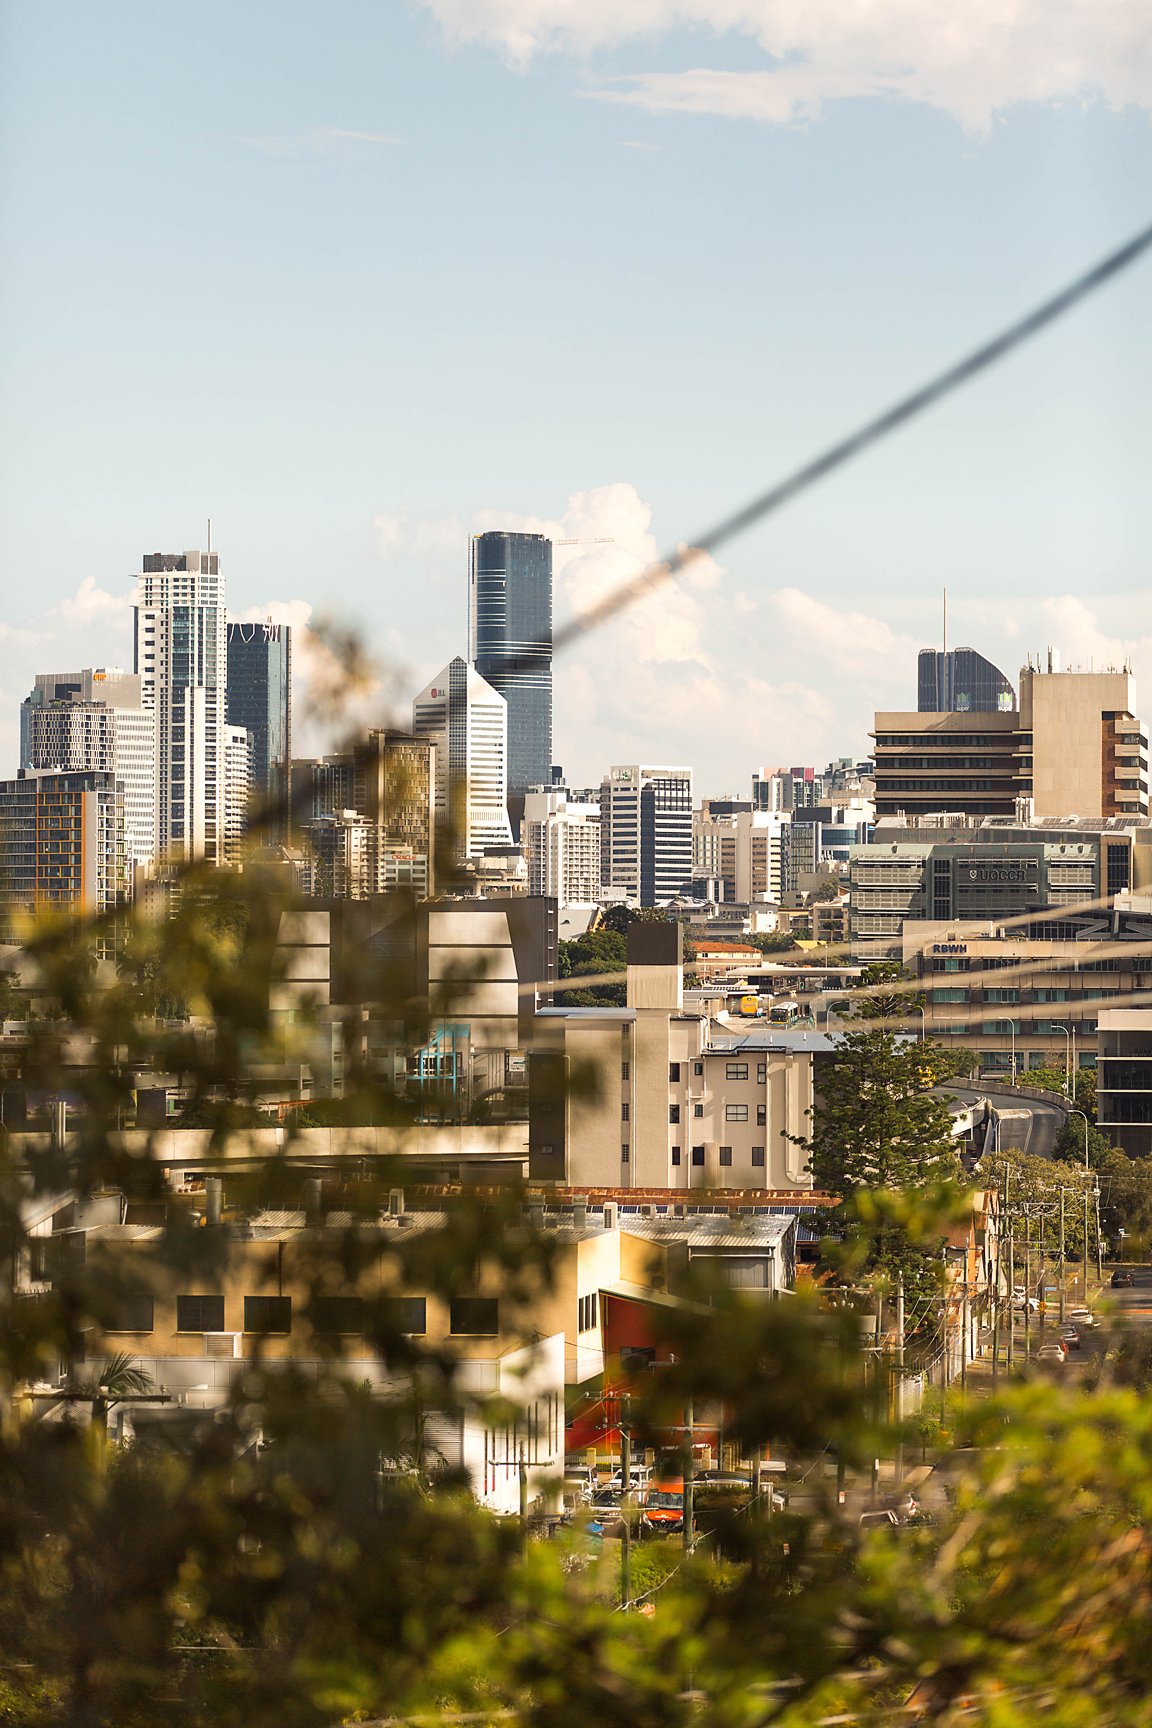 Brisbane soaking up the afternoon light; the view from our home hence the suburban addition of the power-line! We are incredibly grateful for our city - the perfect (for us) hometown to raise a family. (Poppy & Sage Photography)